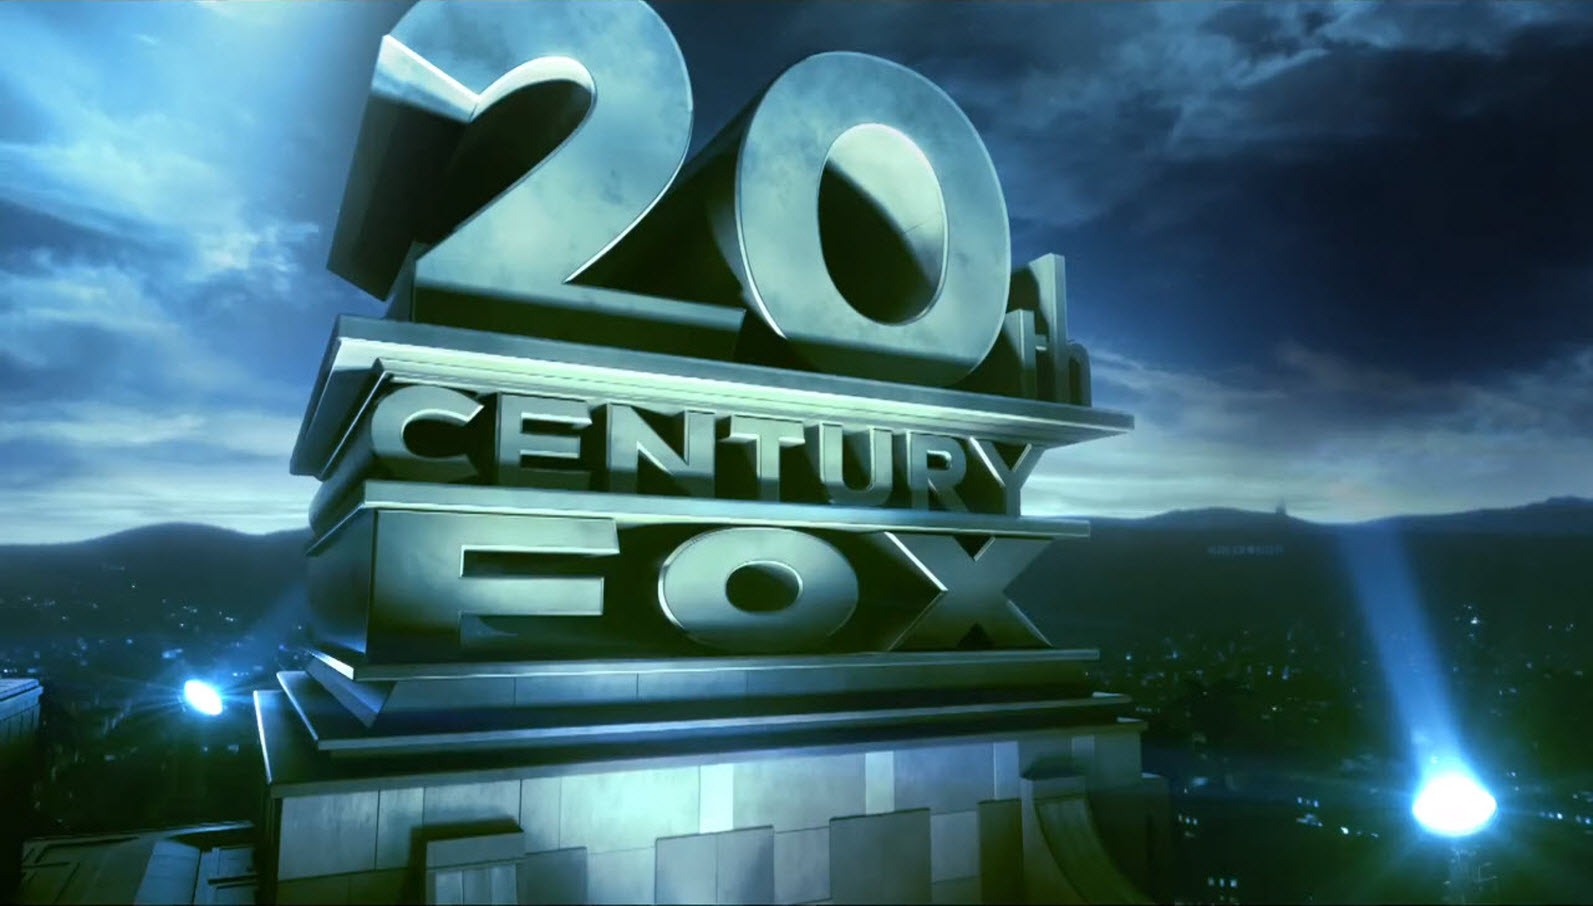 changing trends in cinema in 20th century Changing trends in cinema in 20th century the 20th century observed extraordinary changes in the structure and dynamics of american families.